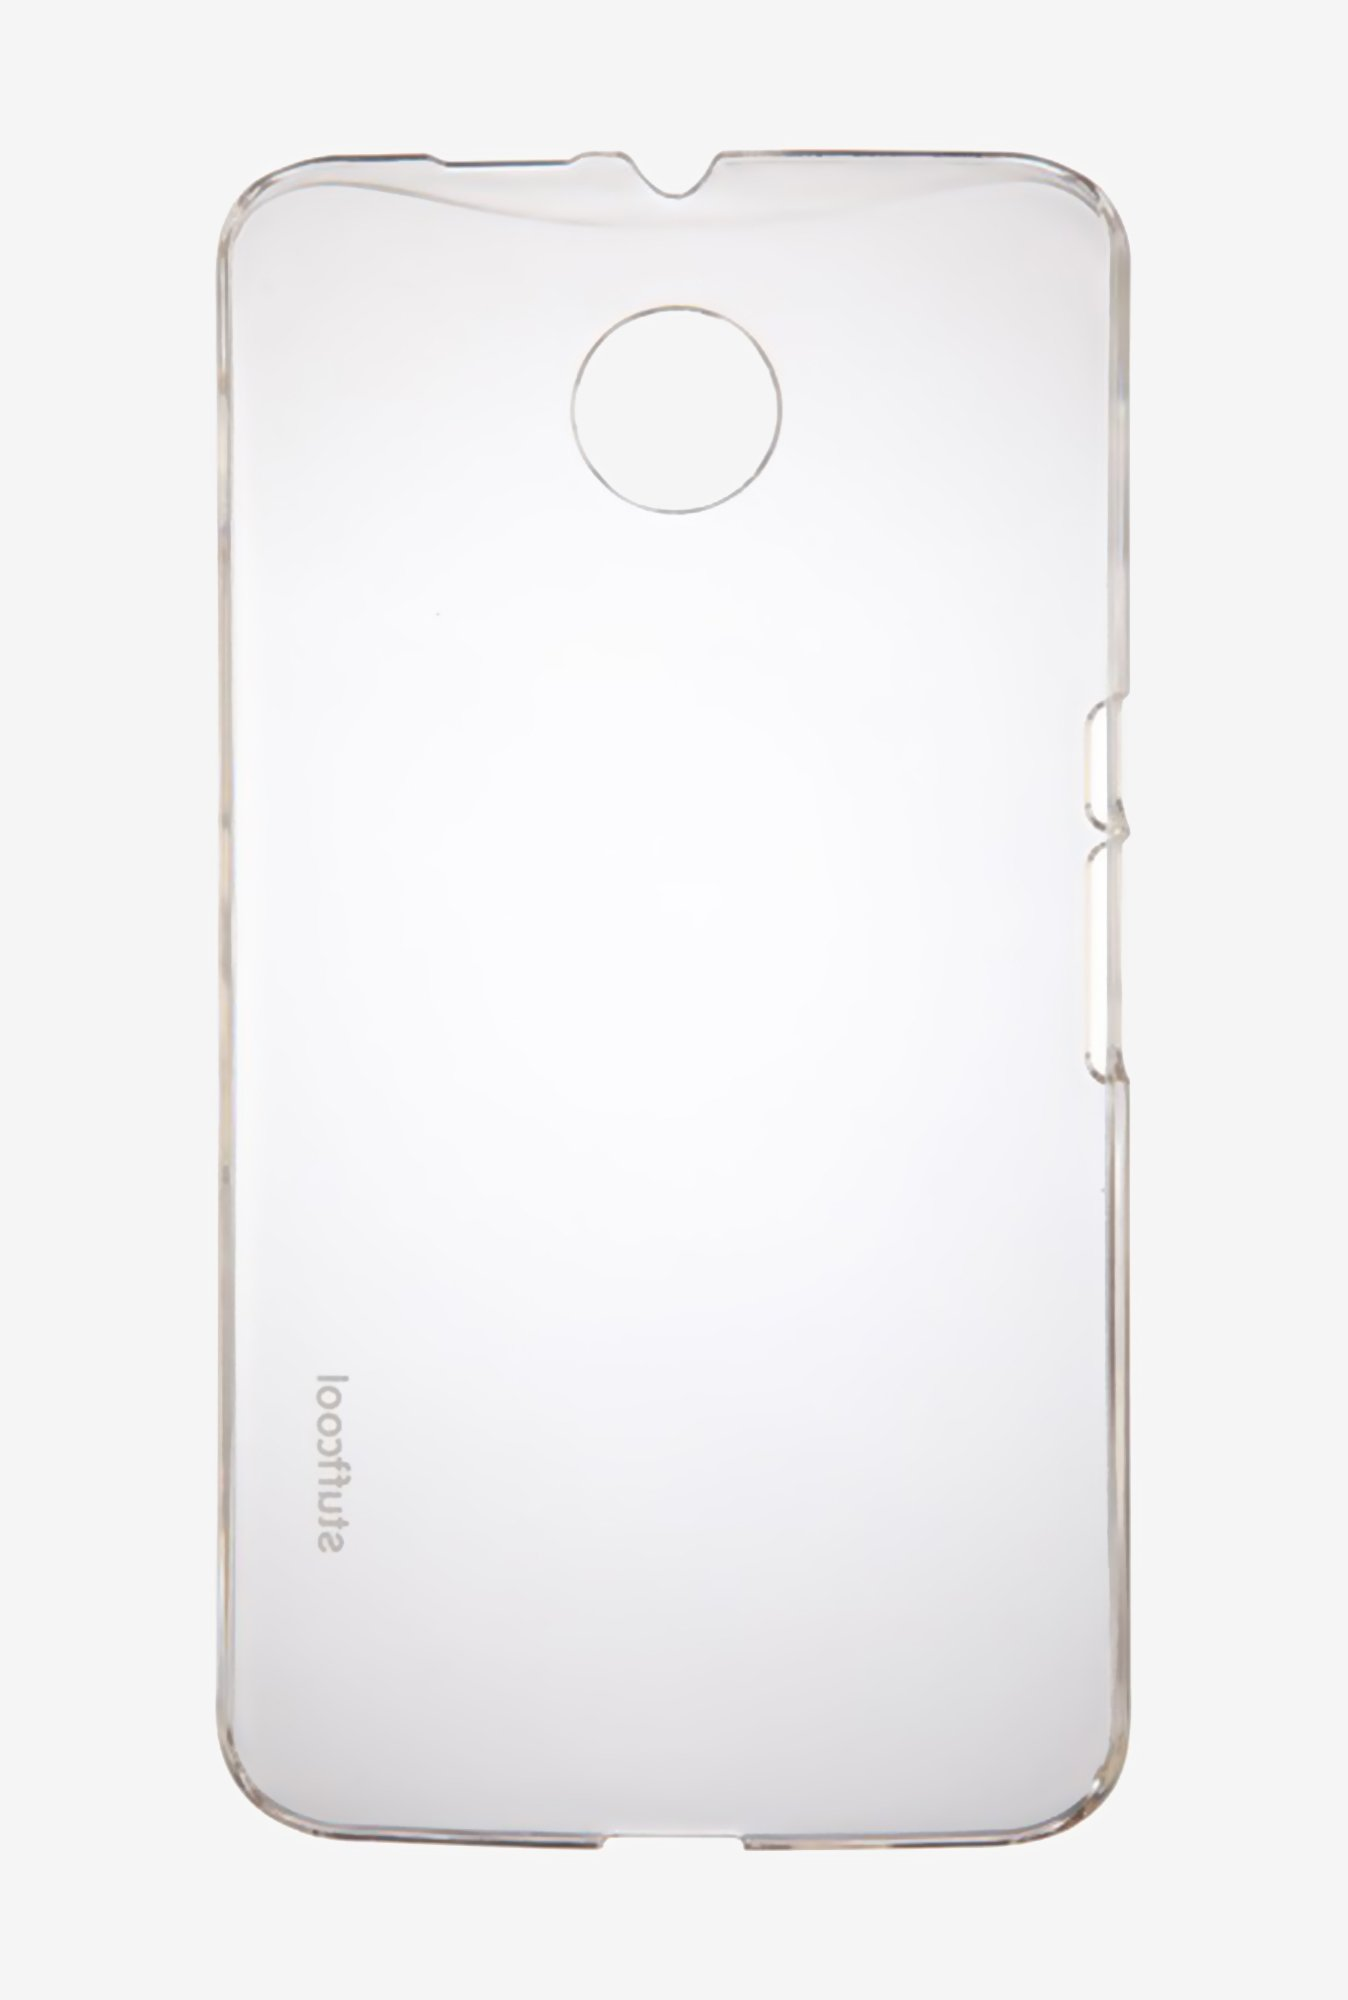 Stuffcool Clair CLMTNX6-CLR Mobile Case Clear